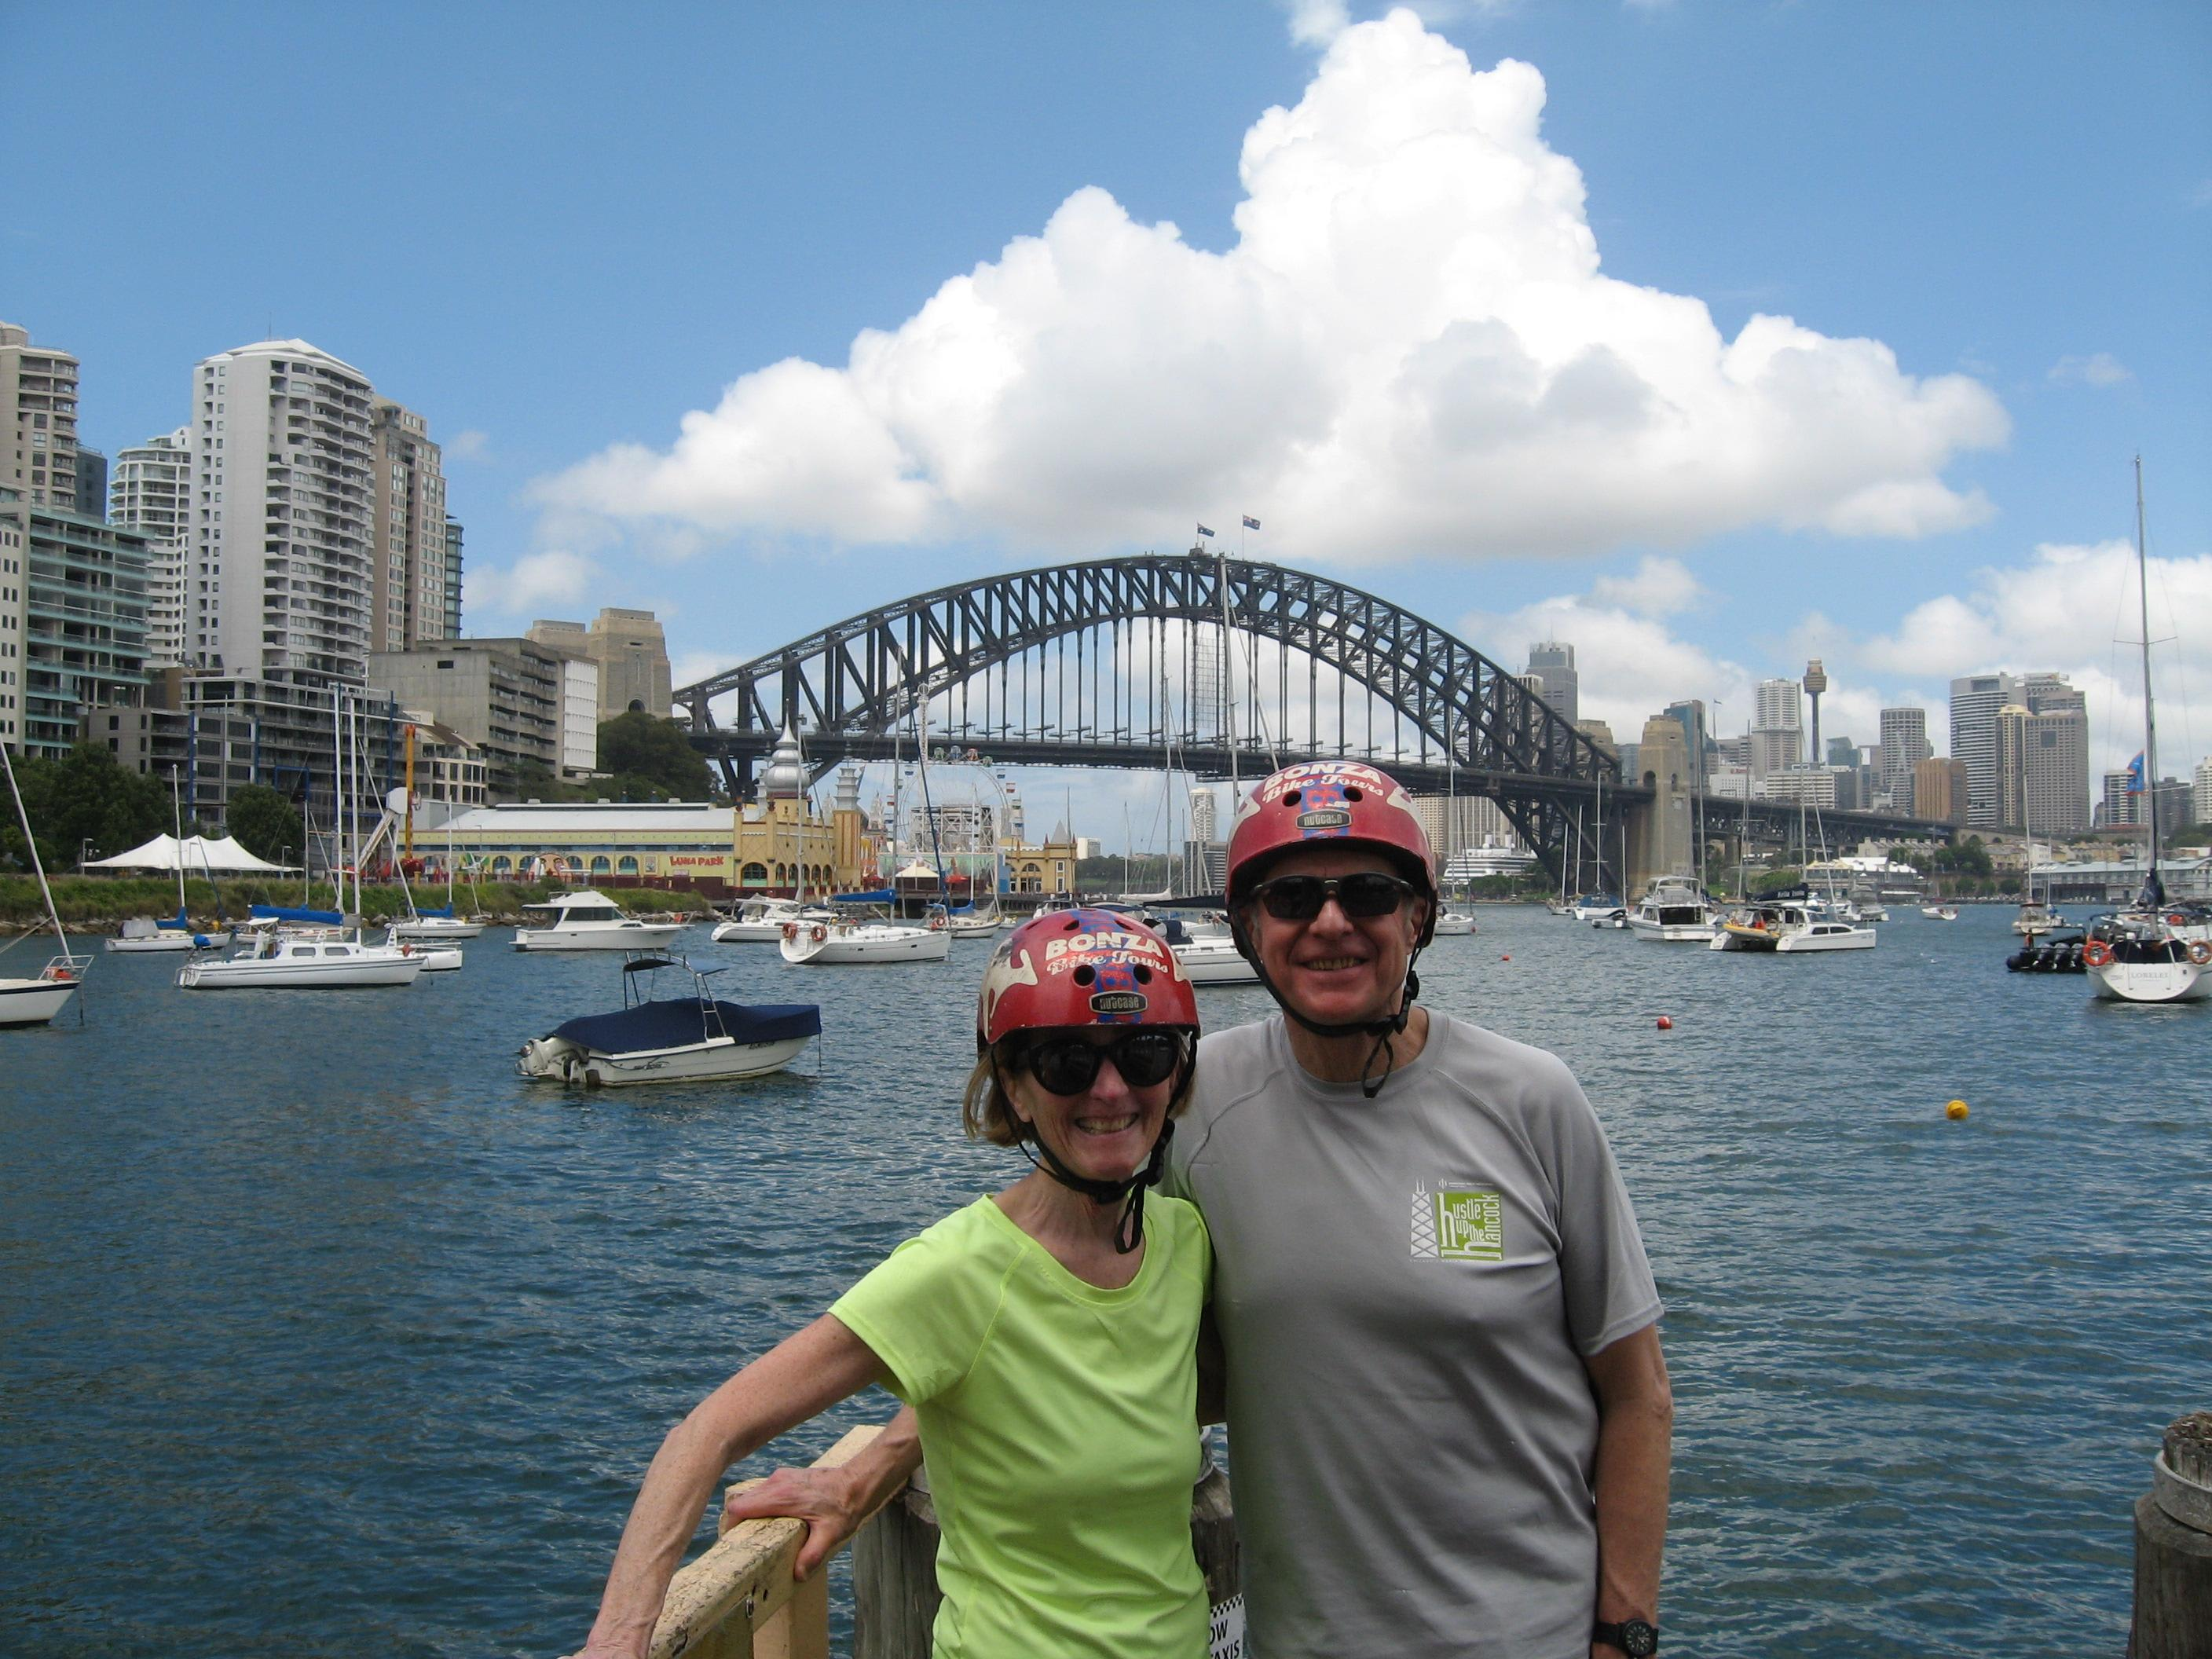 Bike Tour over the Sydney Harbour Bridge with Lunch